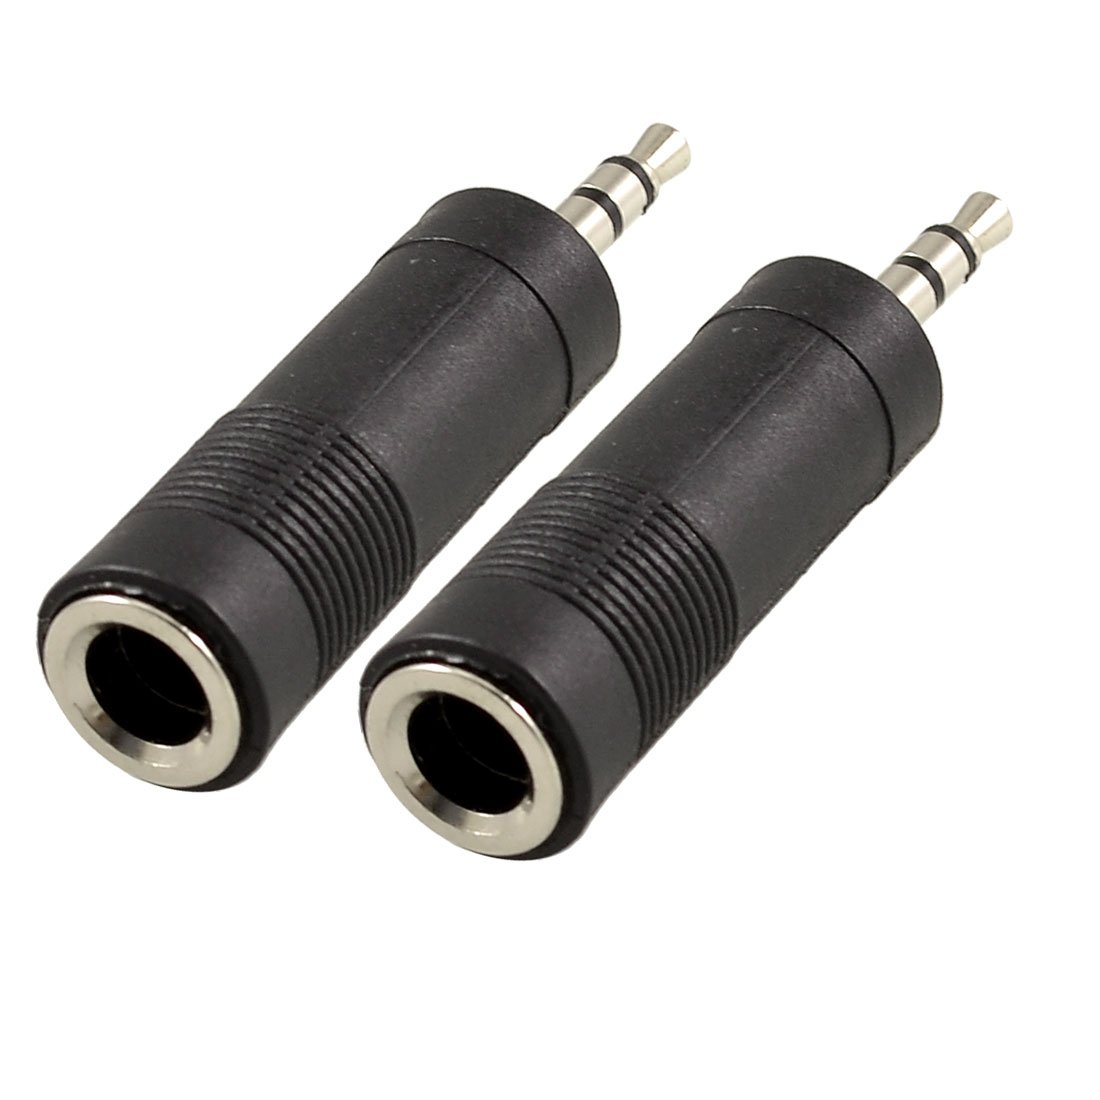 uxcell 3.5mm Male to 6.35mm Female Jack Audio Speaker Cable Connector Adapter 2 Pcs Black